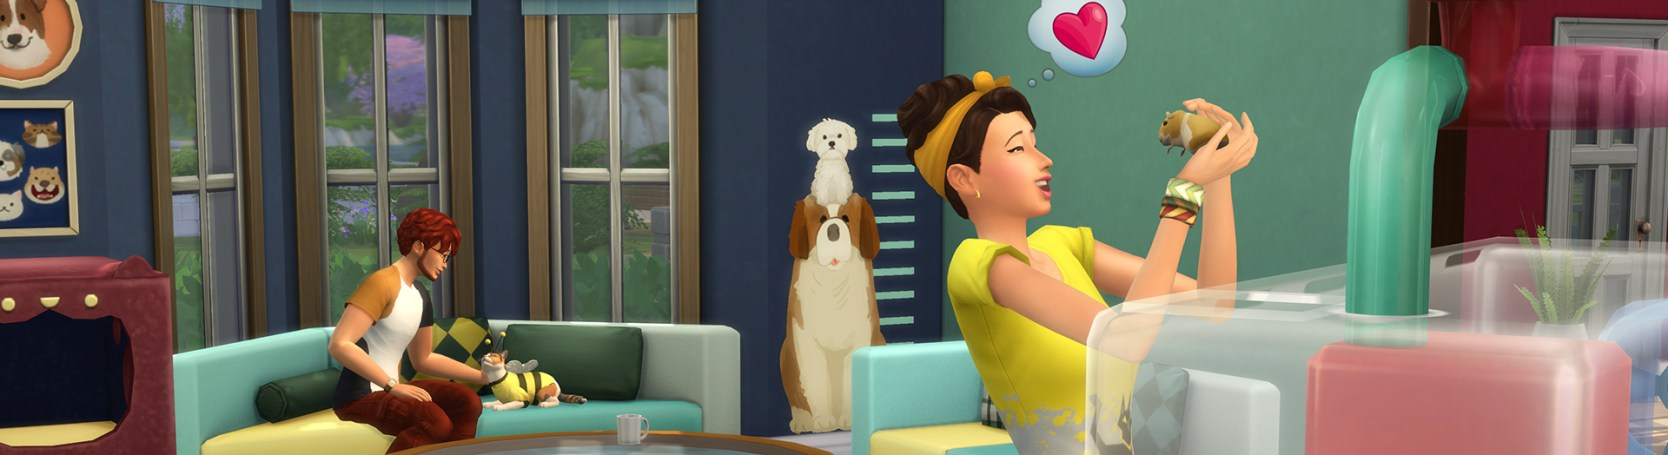 https://i2.wp.com/www.ea.com/media/cache/full/content/dam/www-thesims/store/sp14-pet-stuff/ts4-ss-my-first-pet-stuff-1.jpg?resize=1668%2C455&ssl=1